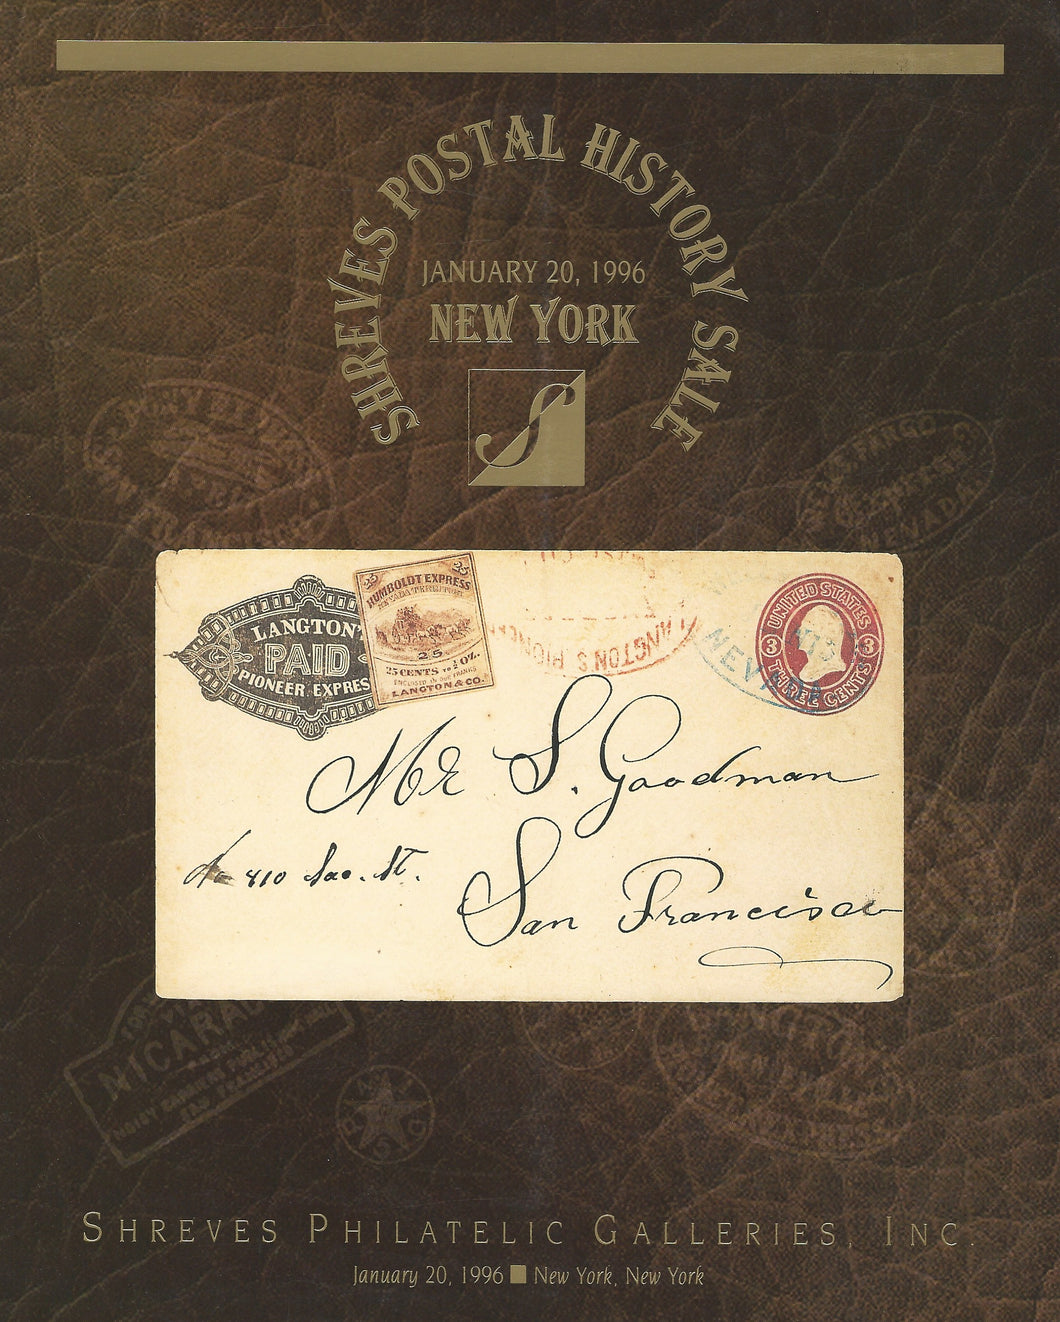 U.S. and Confederate States Postal History, Shreves Philatelic Galleries, New York, Jan. 20, 1996